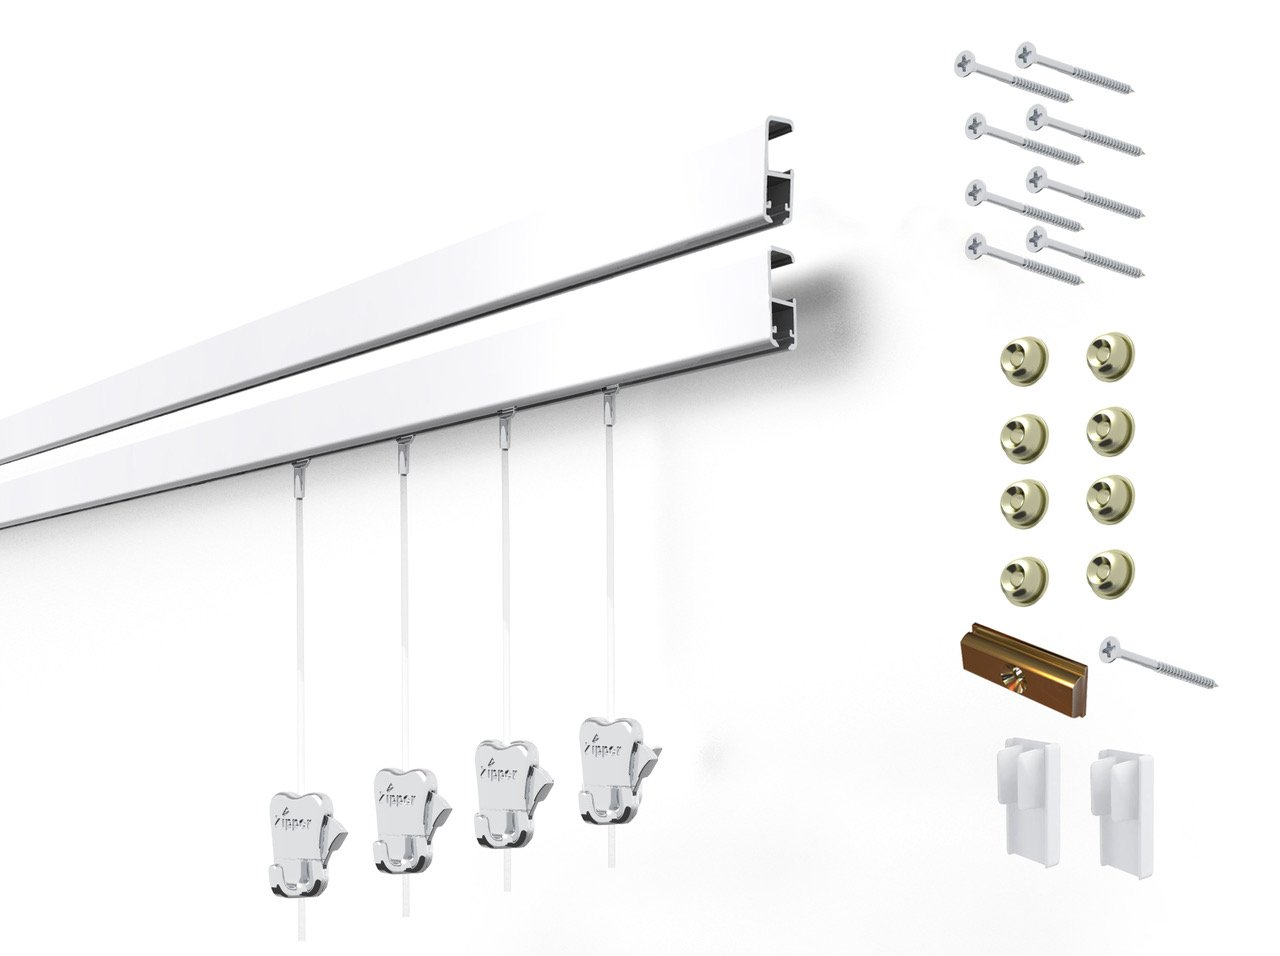 4 Hanging Components STAS Cliprail Pro Picture Hanging System Kit- Heavy Duty Track and Art Hanging Gallery Kit for Home, Office or Public Space (2 rails 4 hooks and cords, white rails)